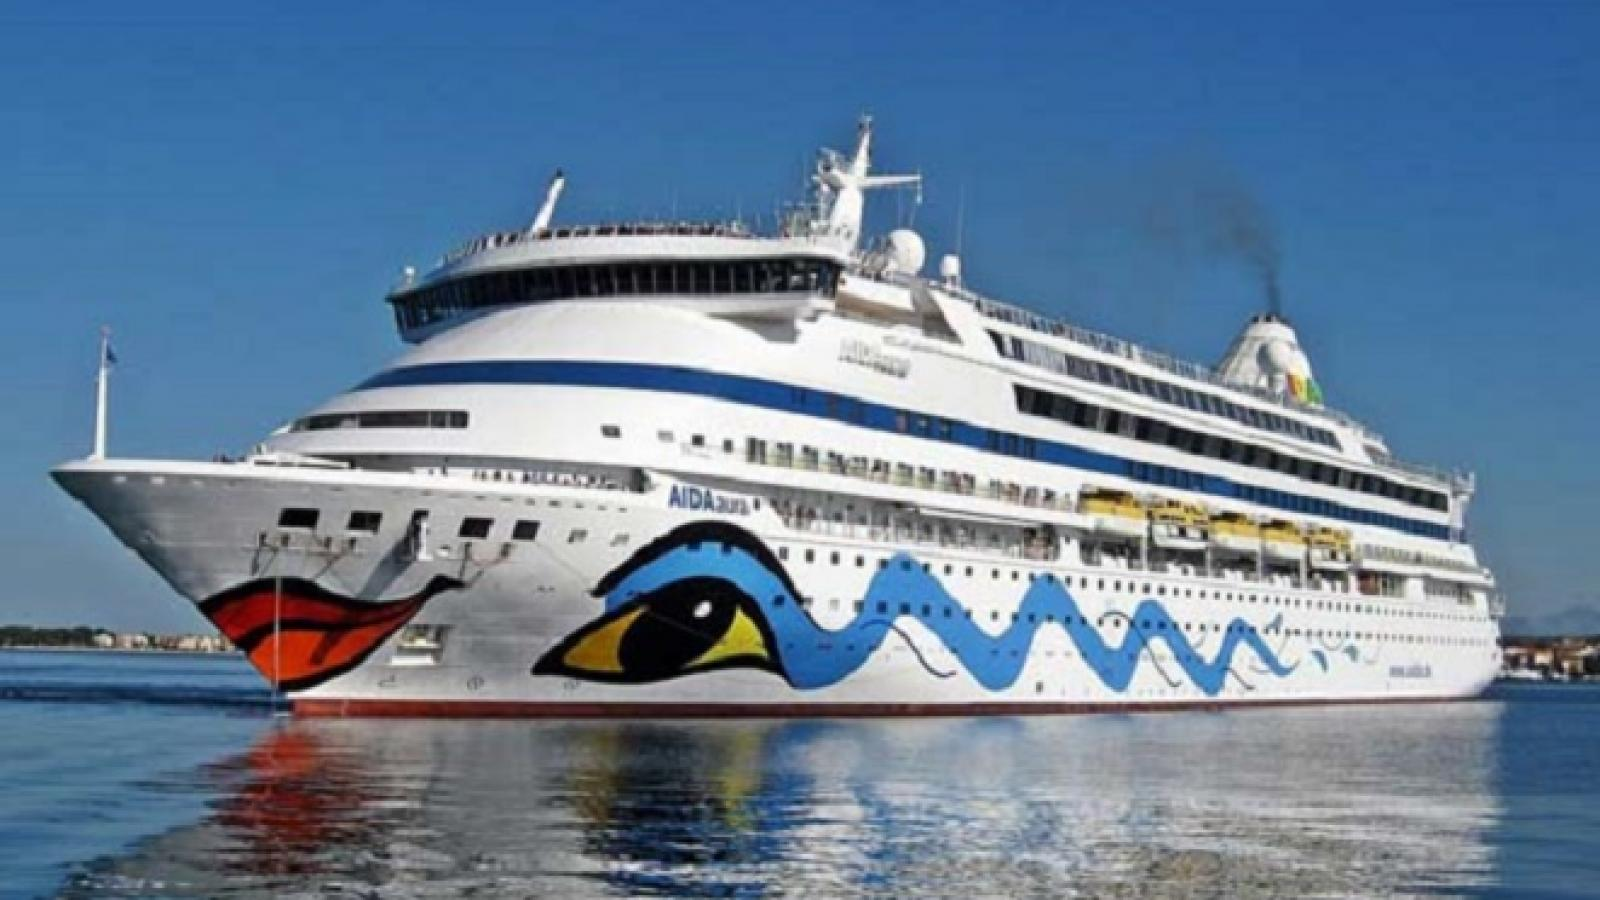 AIDAaura Cruise ship photo